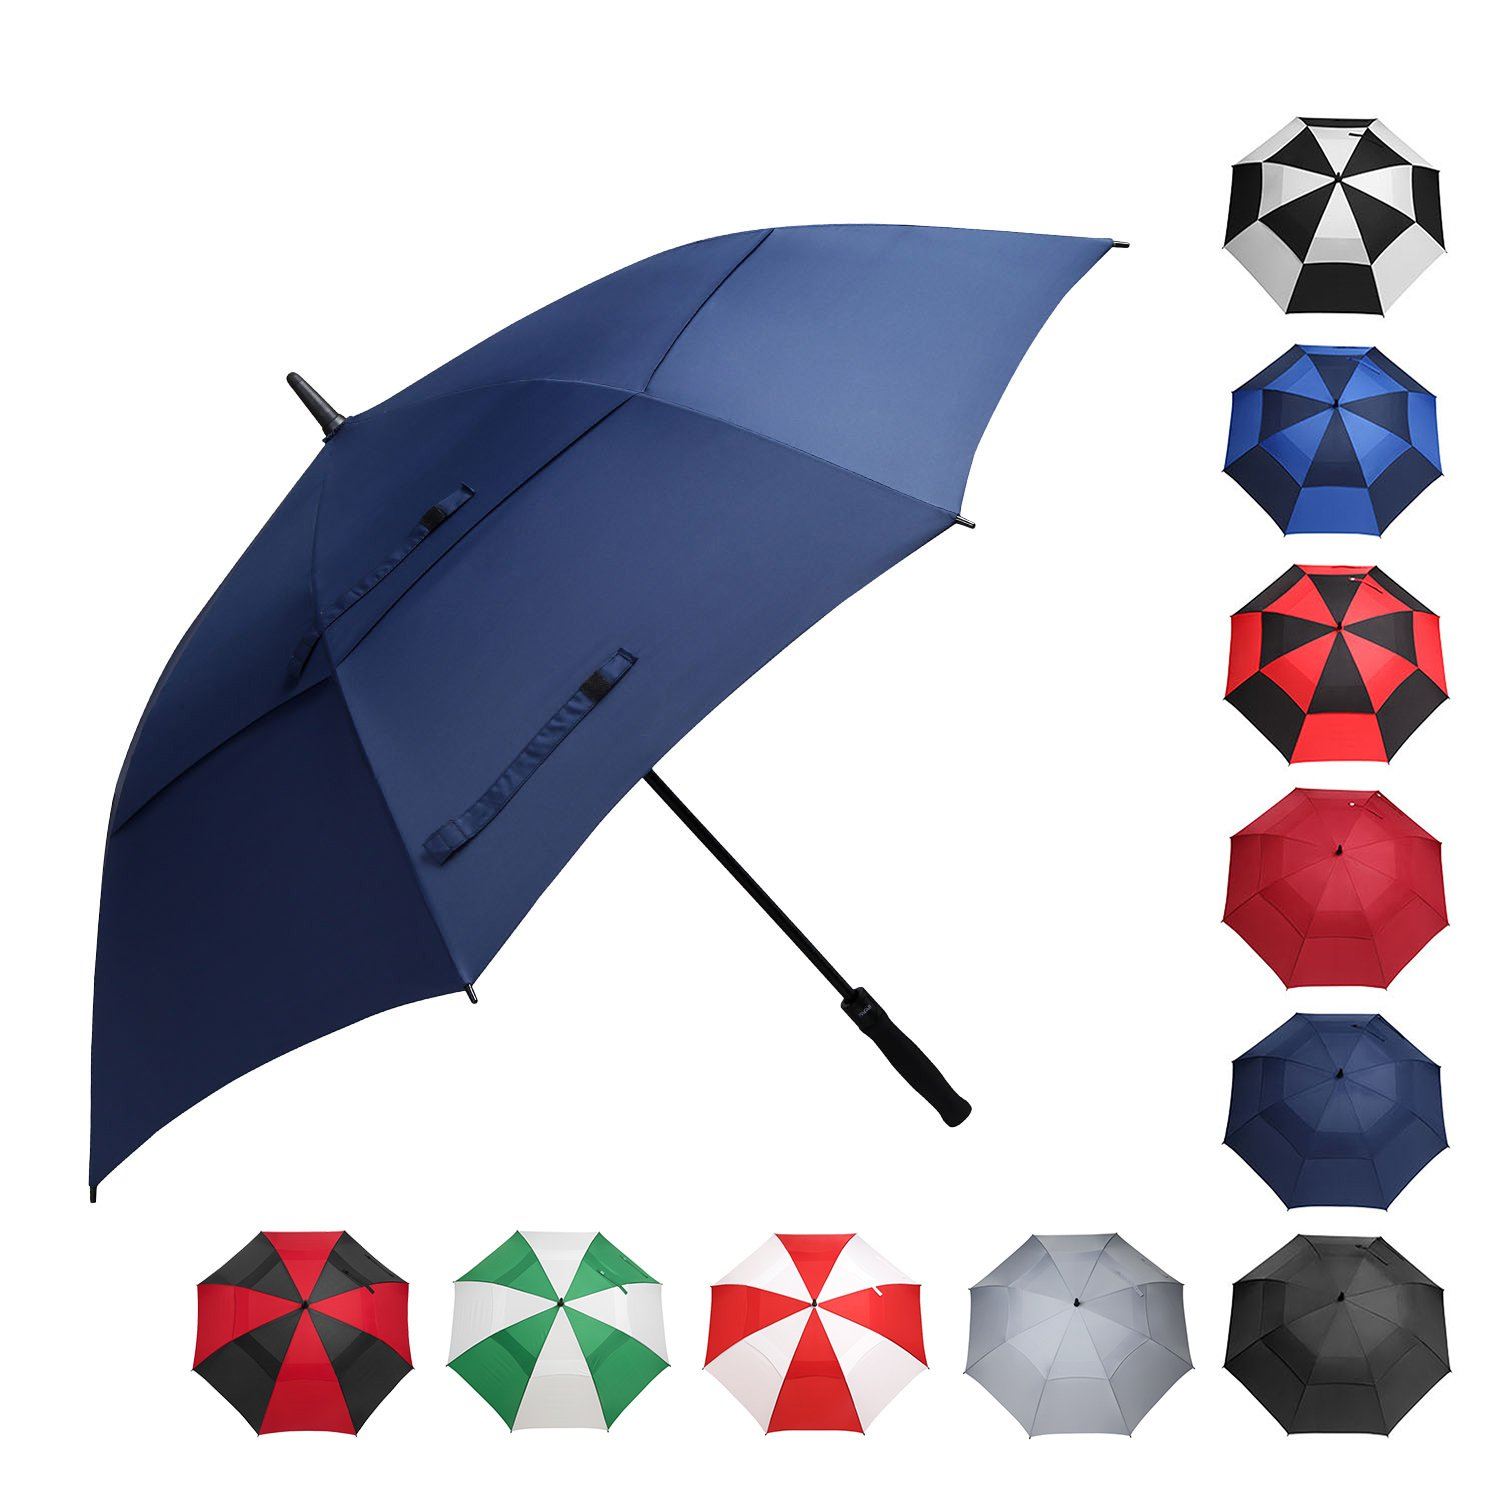 BAGAIL Golf Umbrella 68/62/58 Inch Large Oversize Double Canopy Vented Windproof Waterproof Automatic Open Stick Umbrellas for Men and Women (Double Navy, 62 inch) by BAGAIL